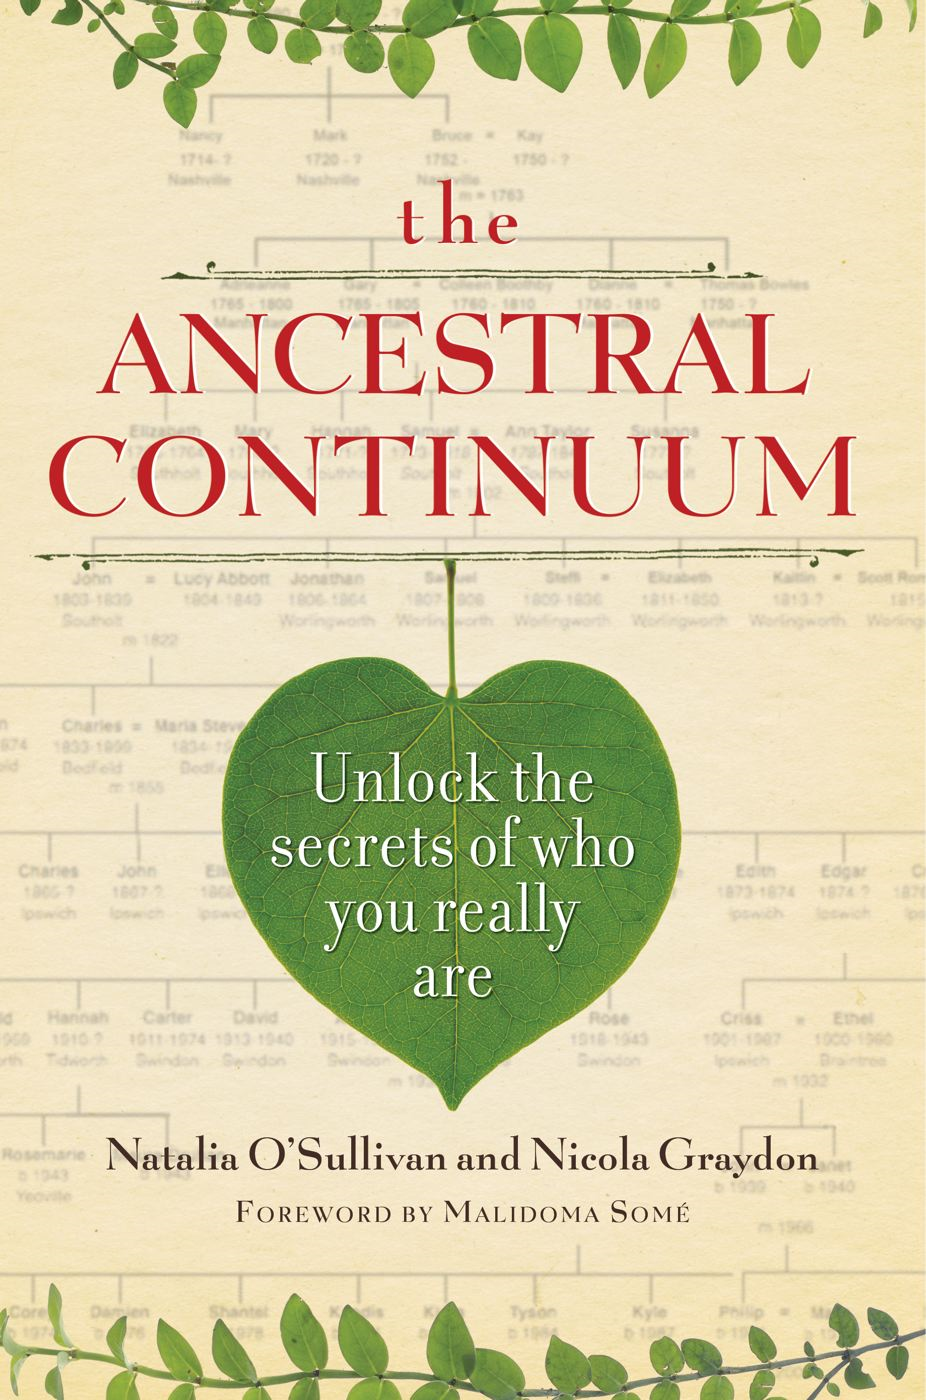 The Ancestral Continuum